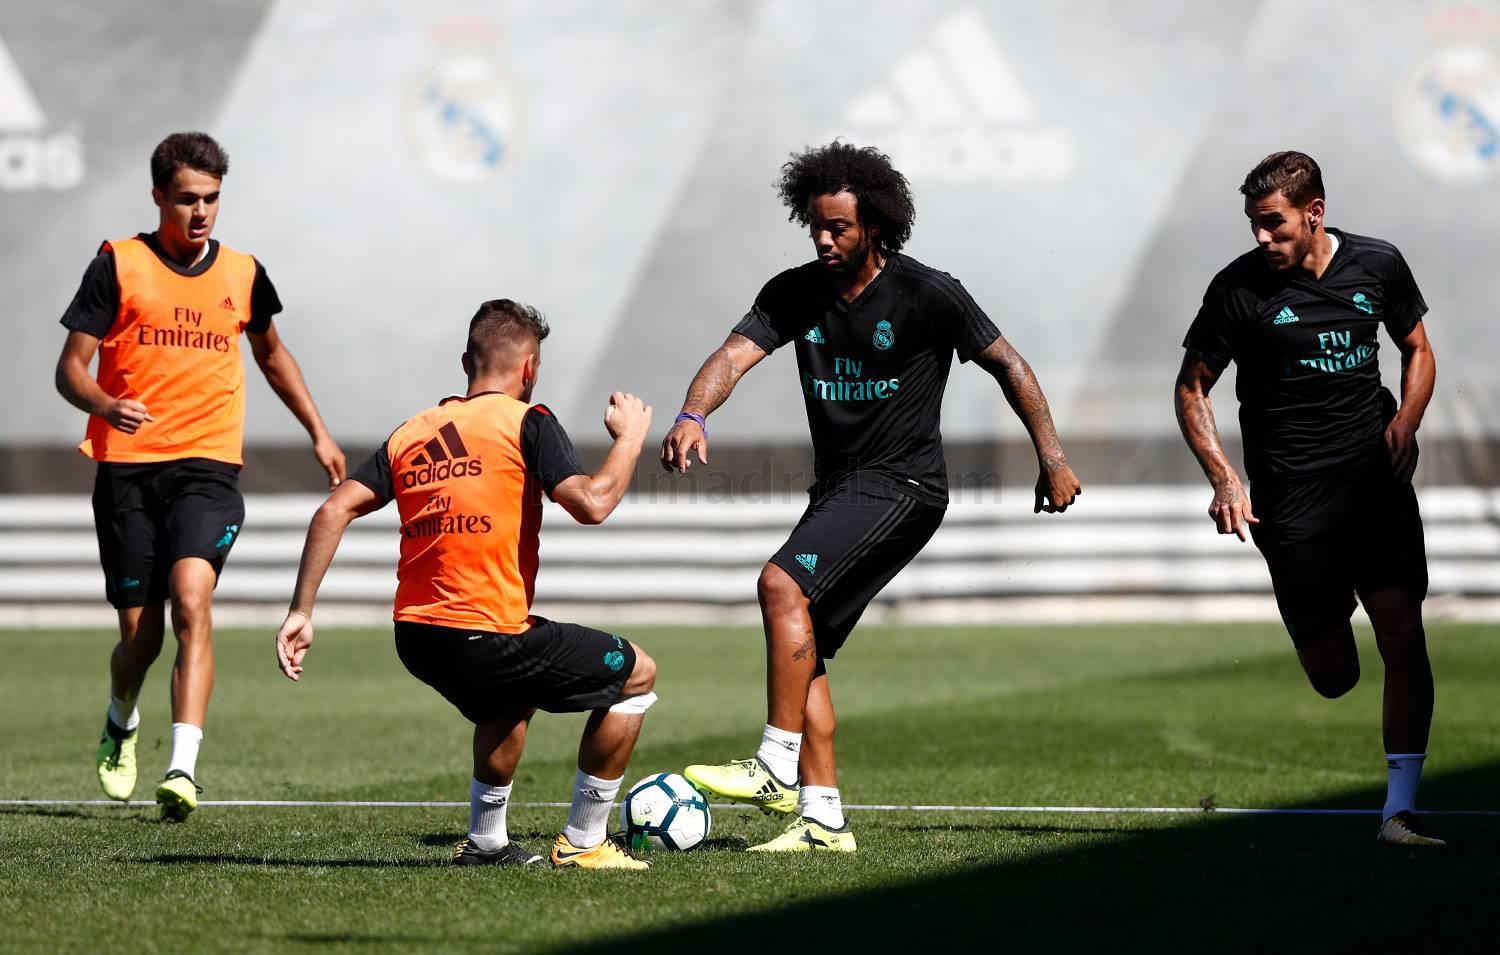 Real Madrid - Entrenamiento del Real Madrid - 05-09-2017